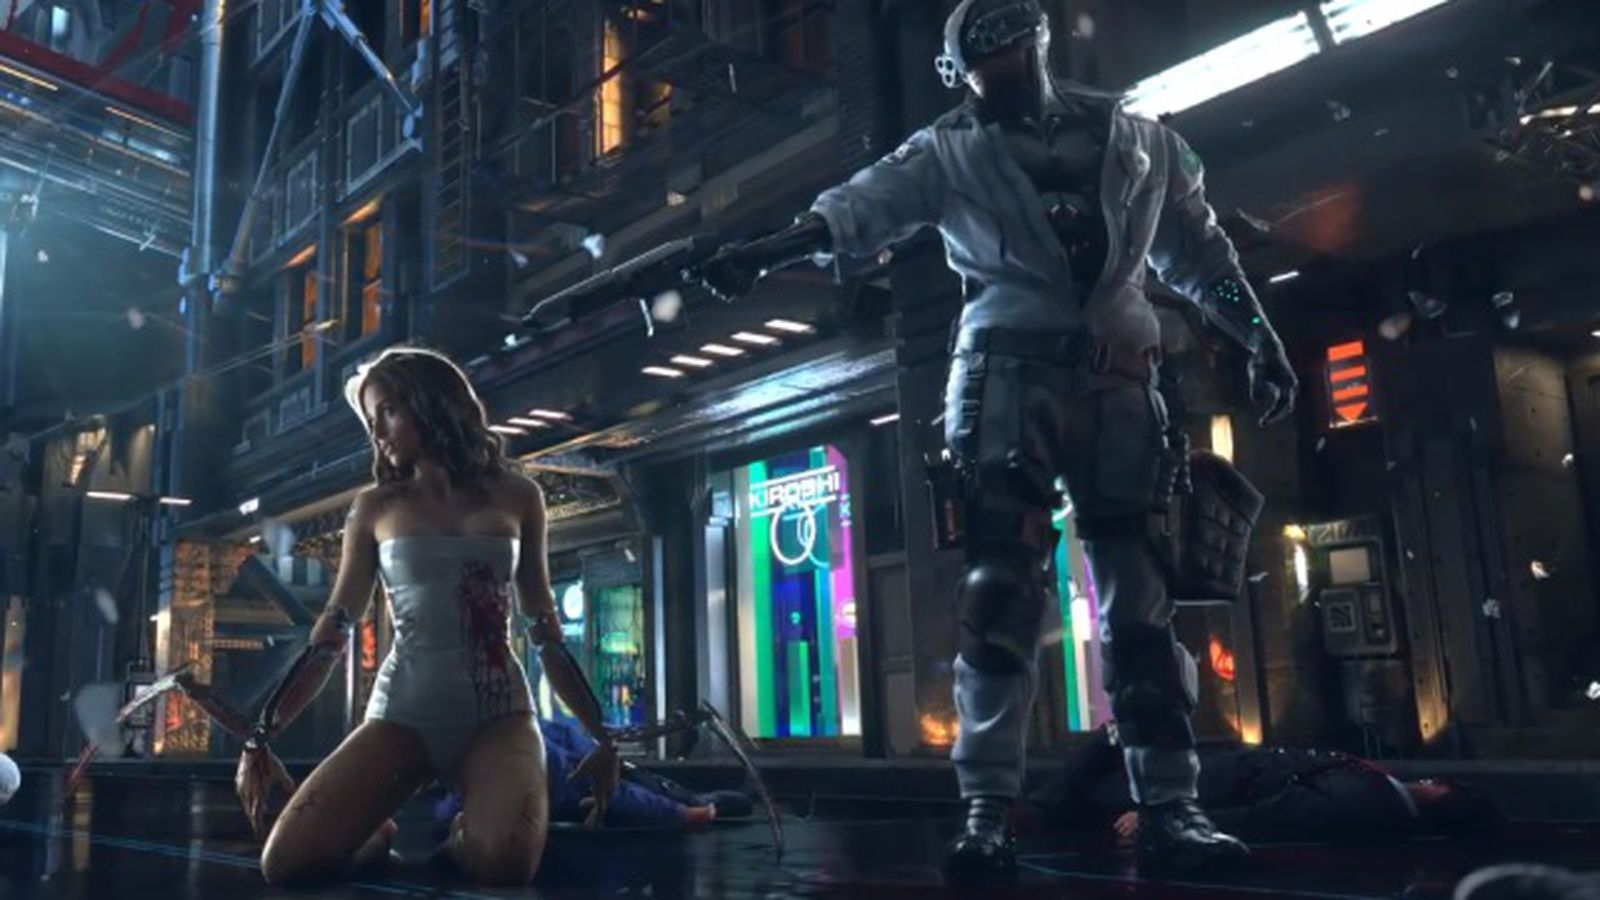 CD Projekt RED Confirmed for E3, Cyberpunk 2077 Reveal Imminent?